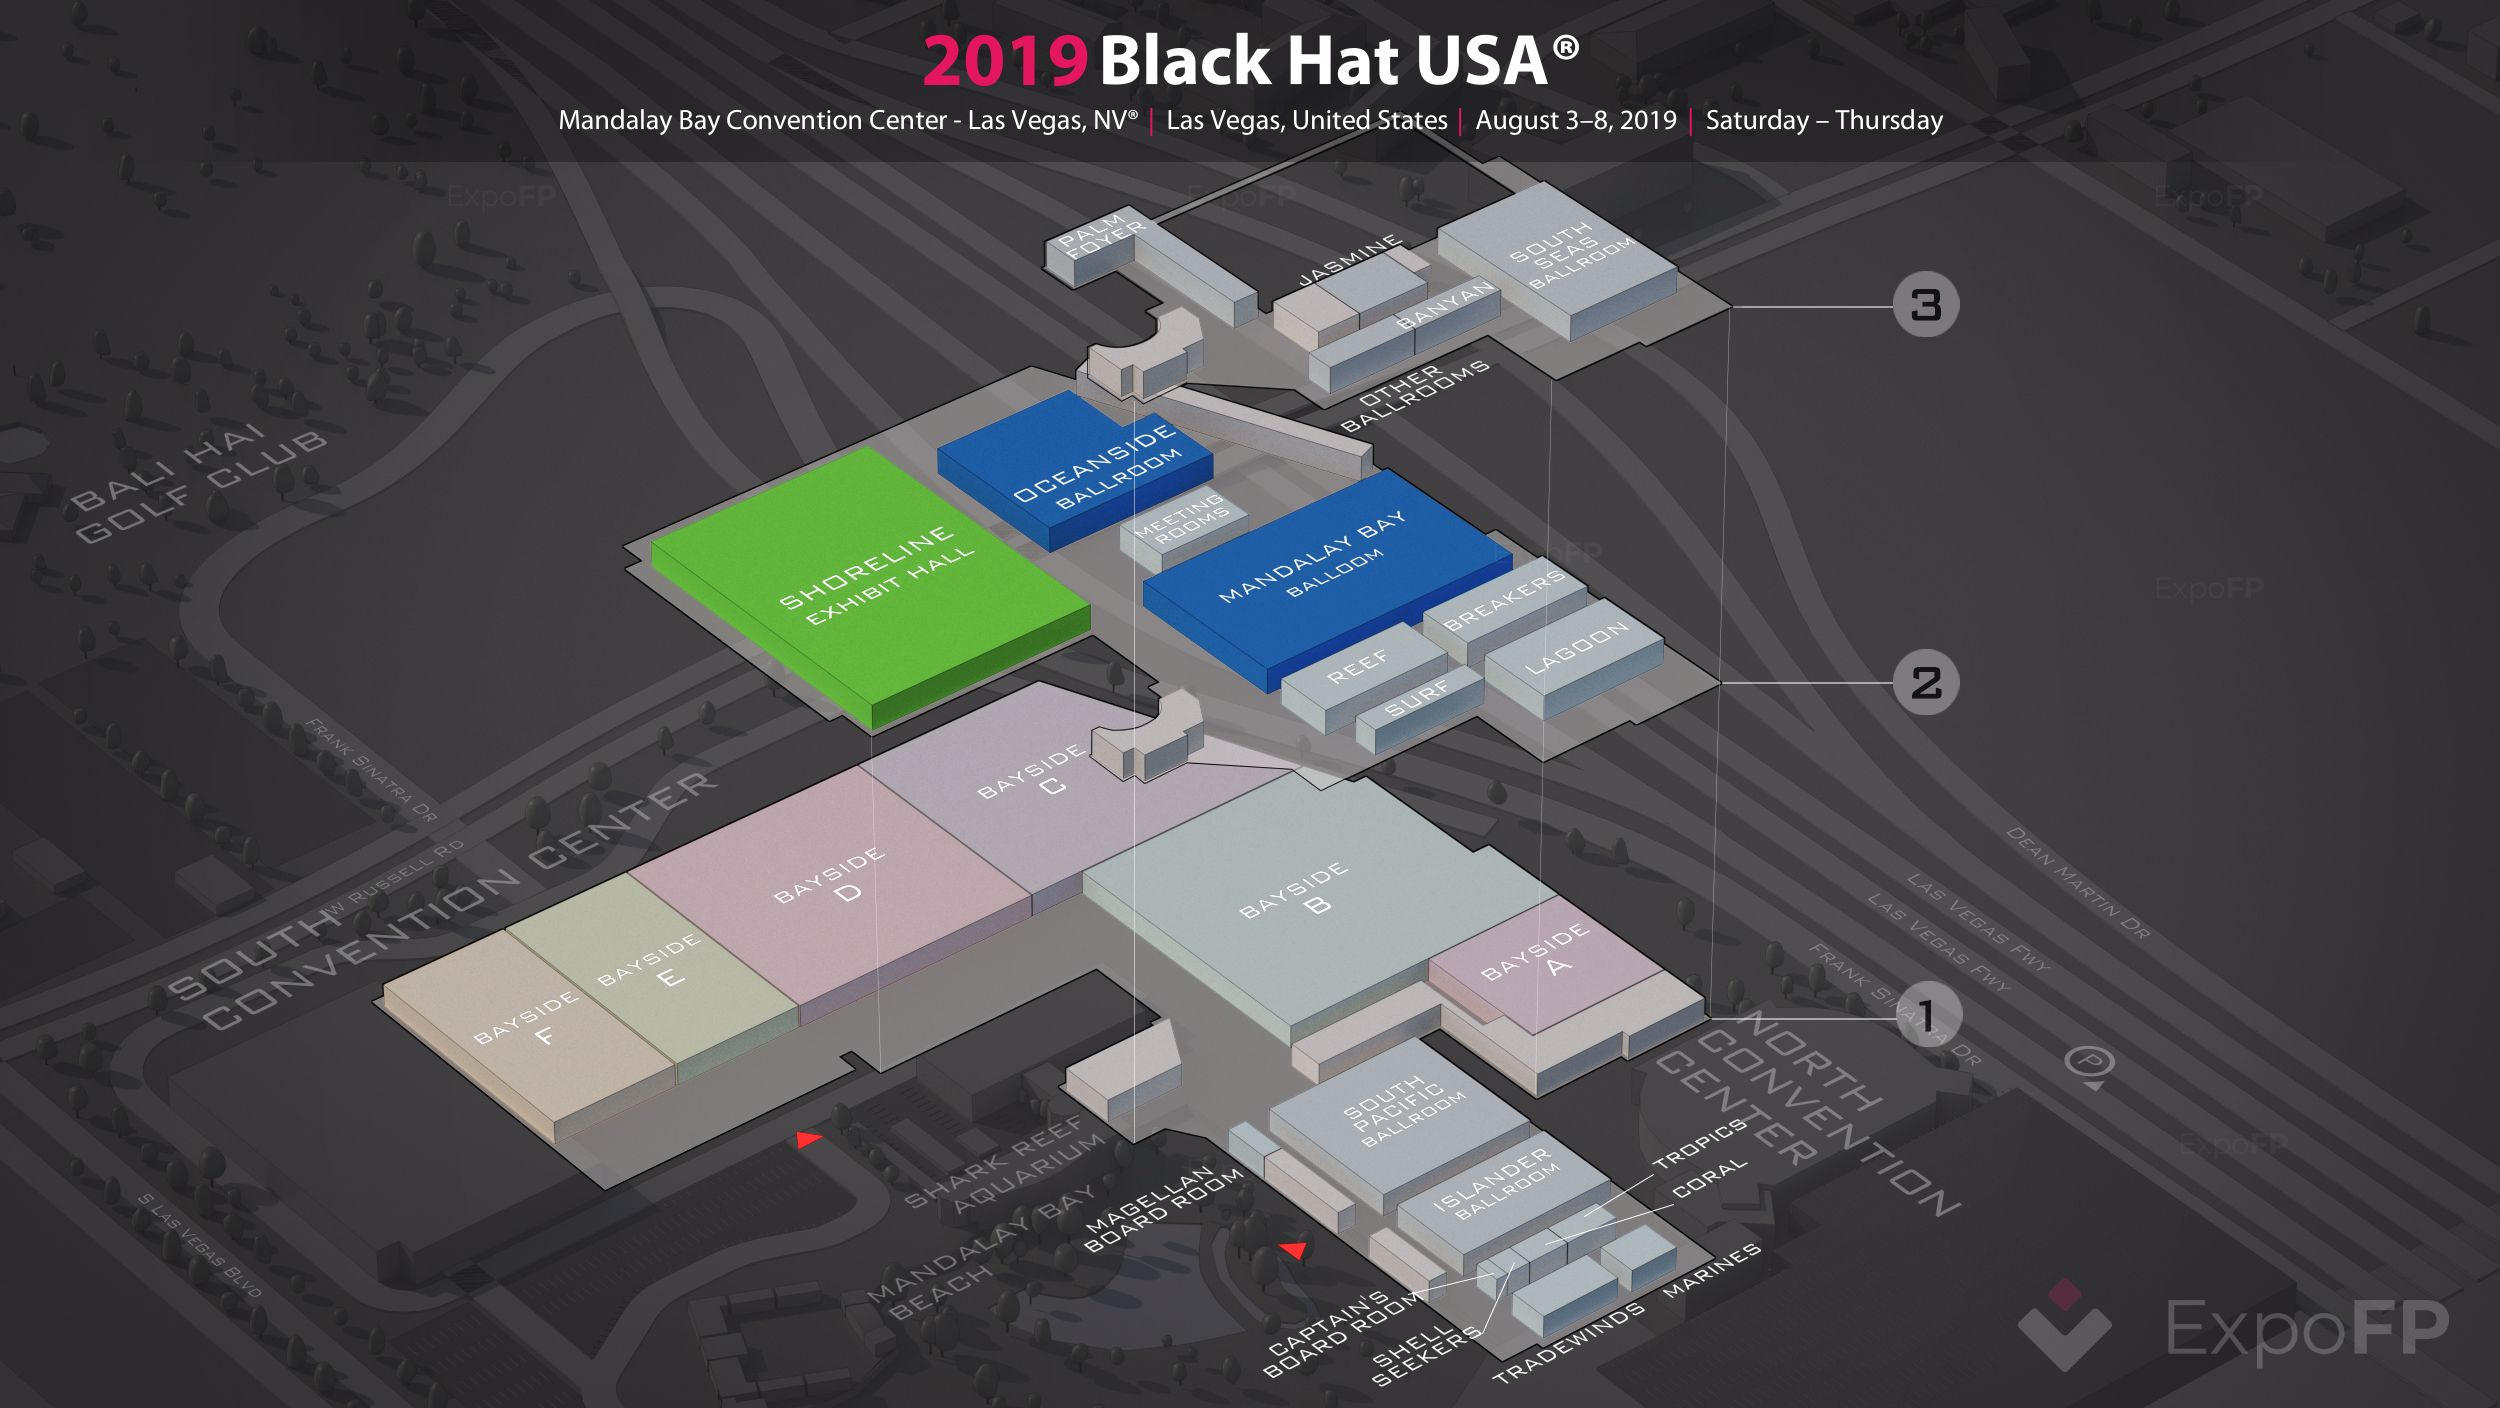 Black Hat USA 2019 in Mandalay Bay Convention Center